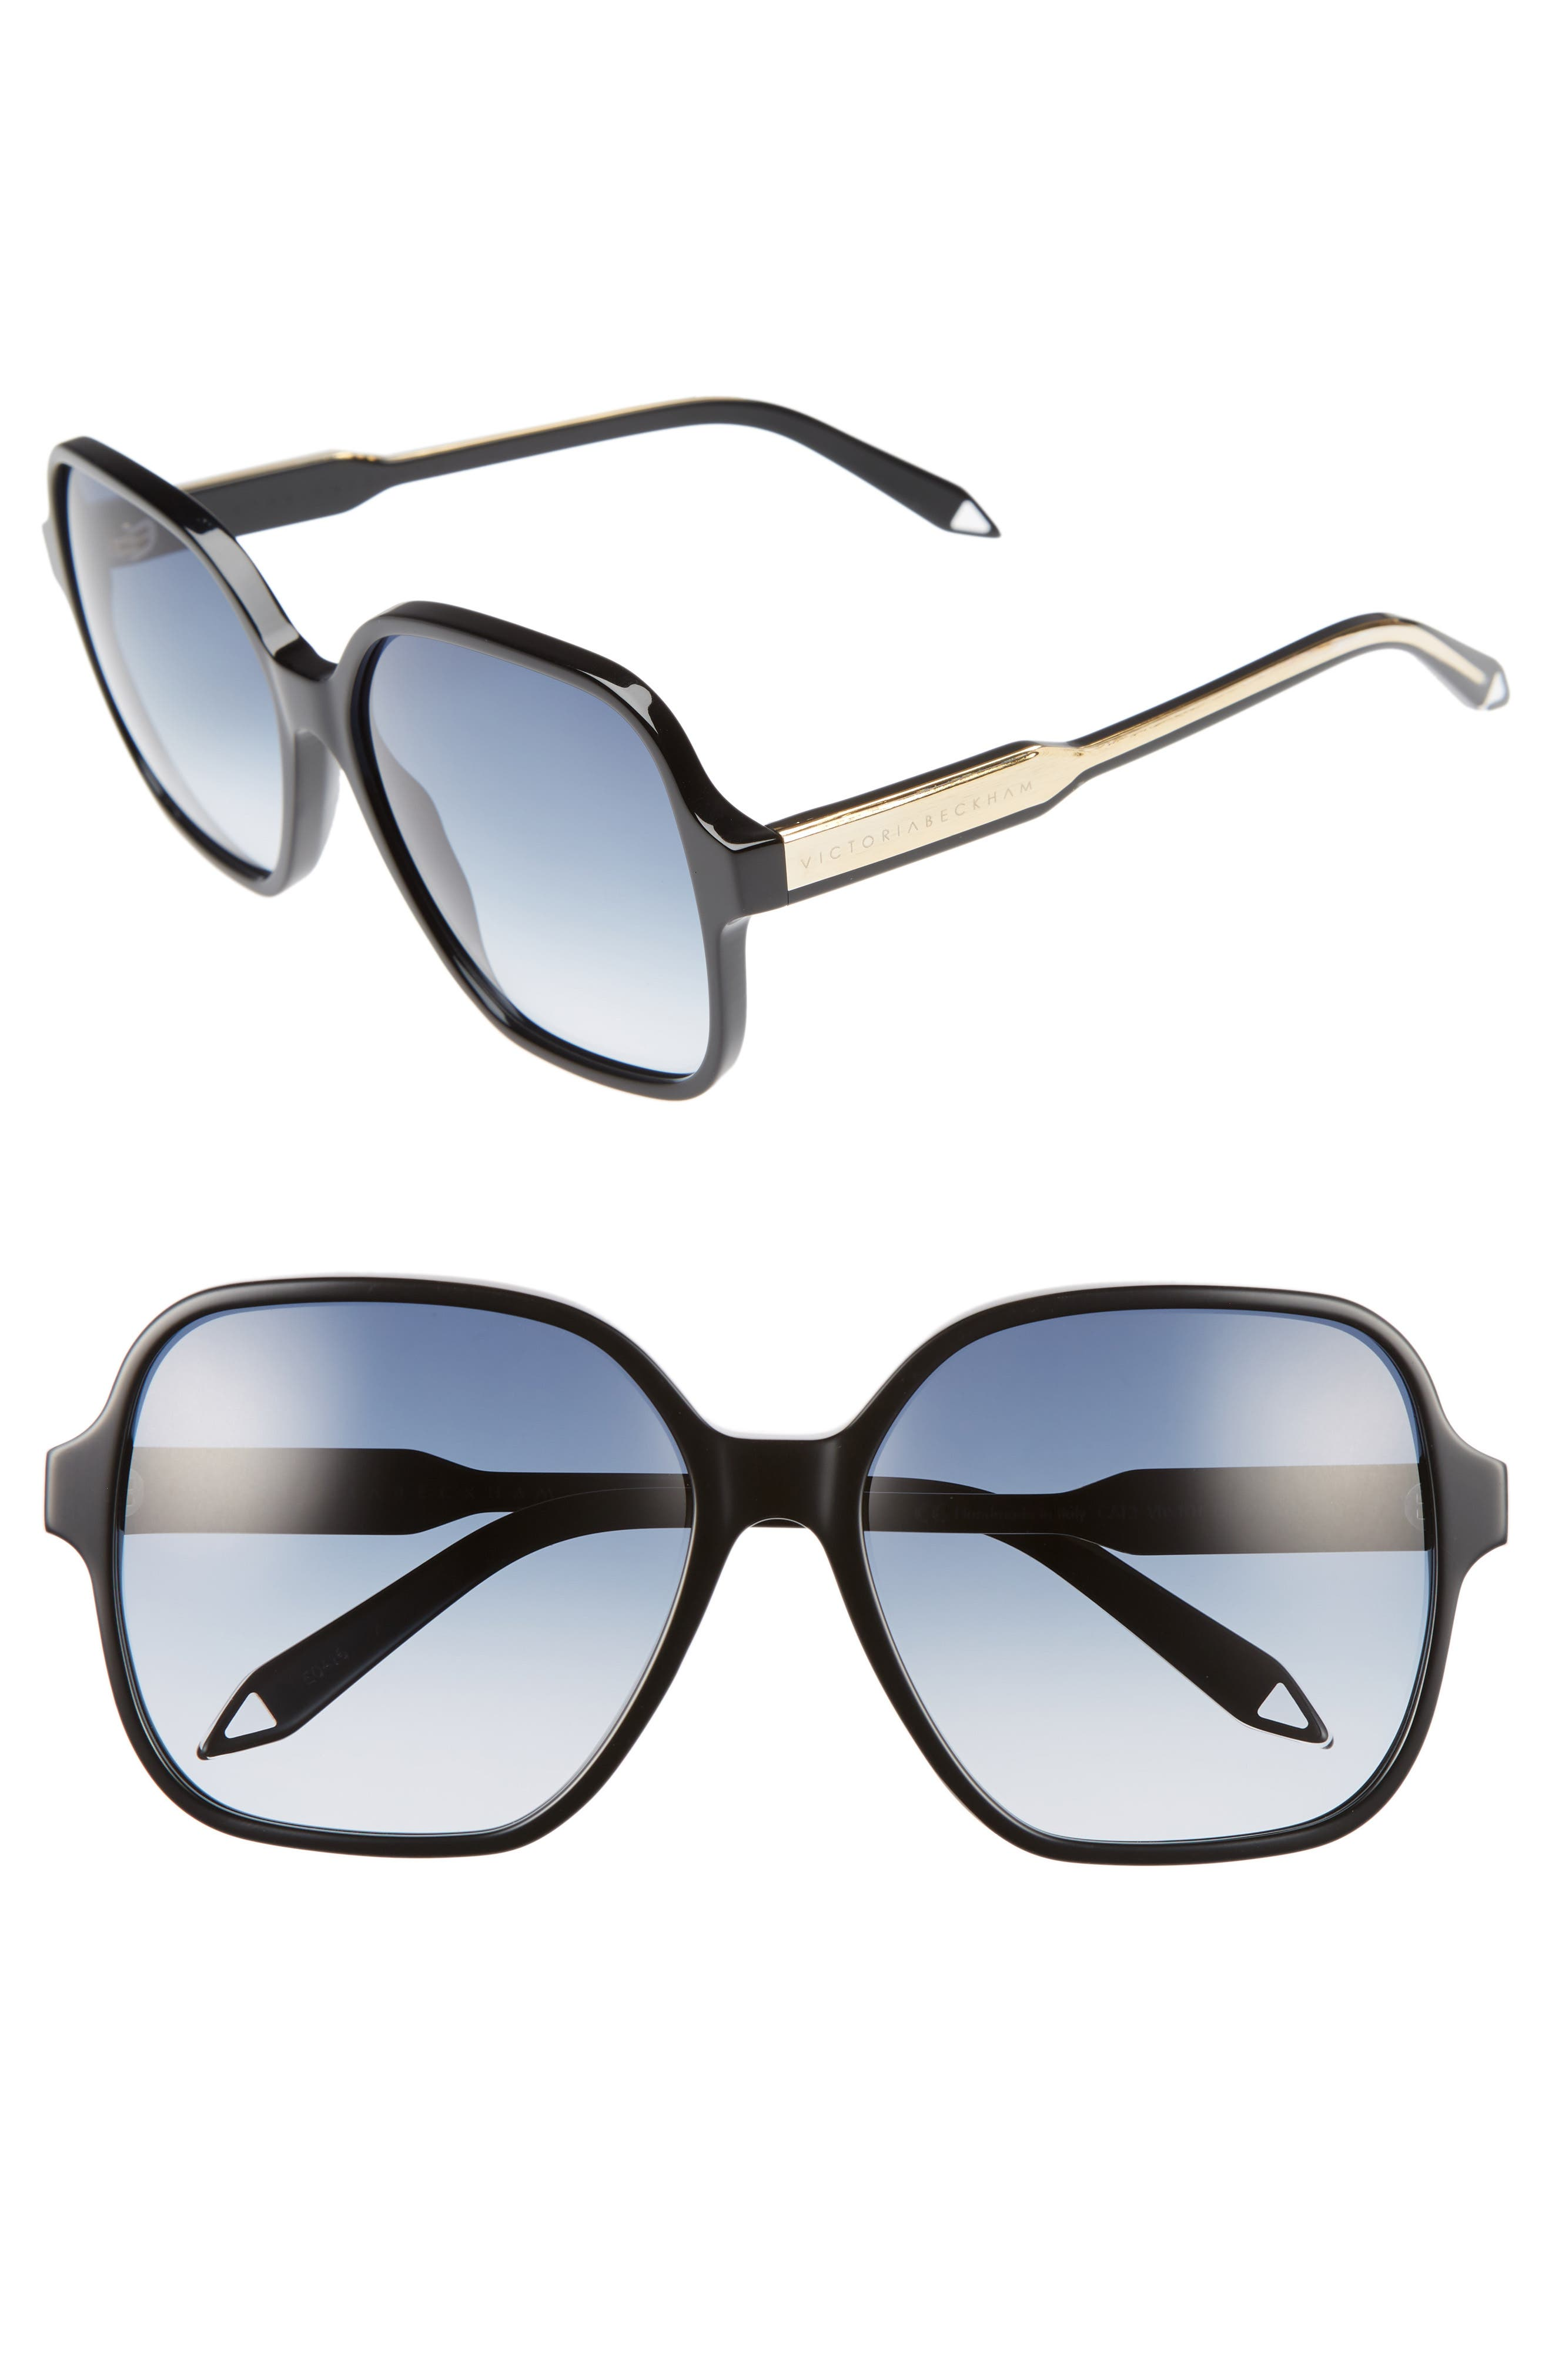 Iconic Square 59mm Sunglasses,                             Main thumbnail 1, color,                             001